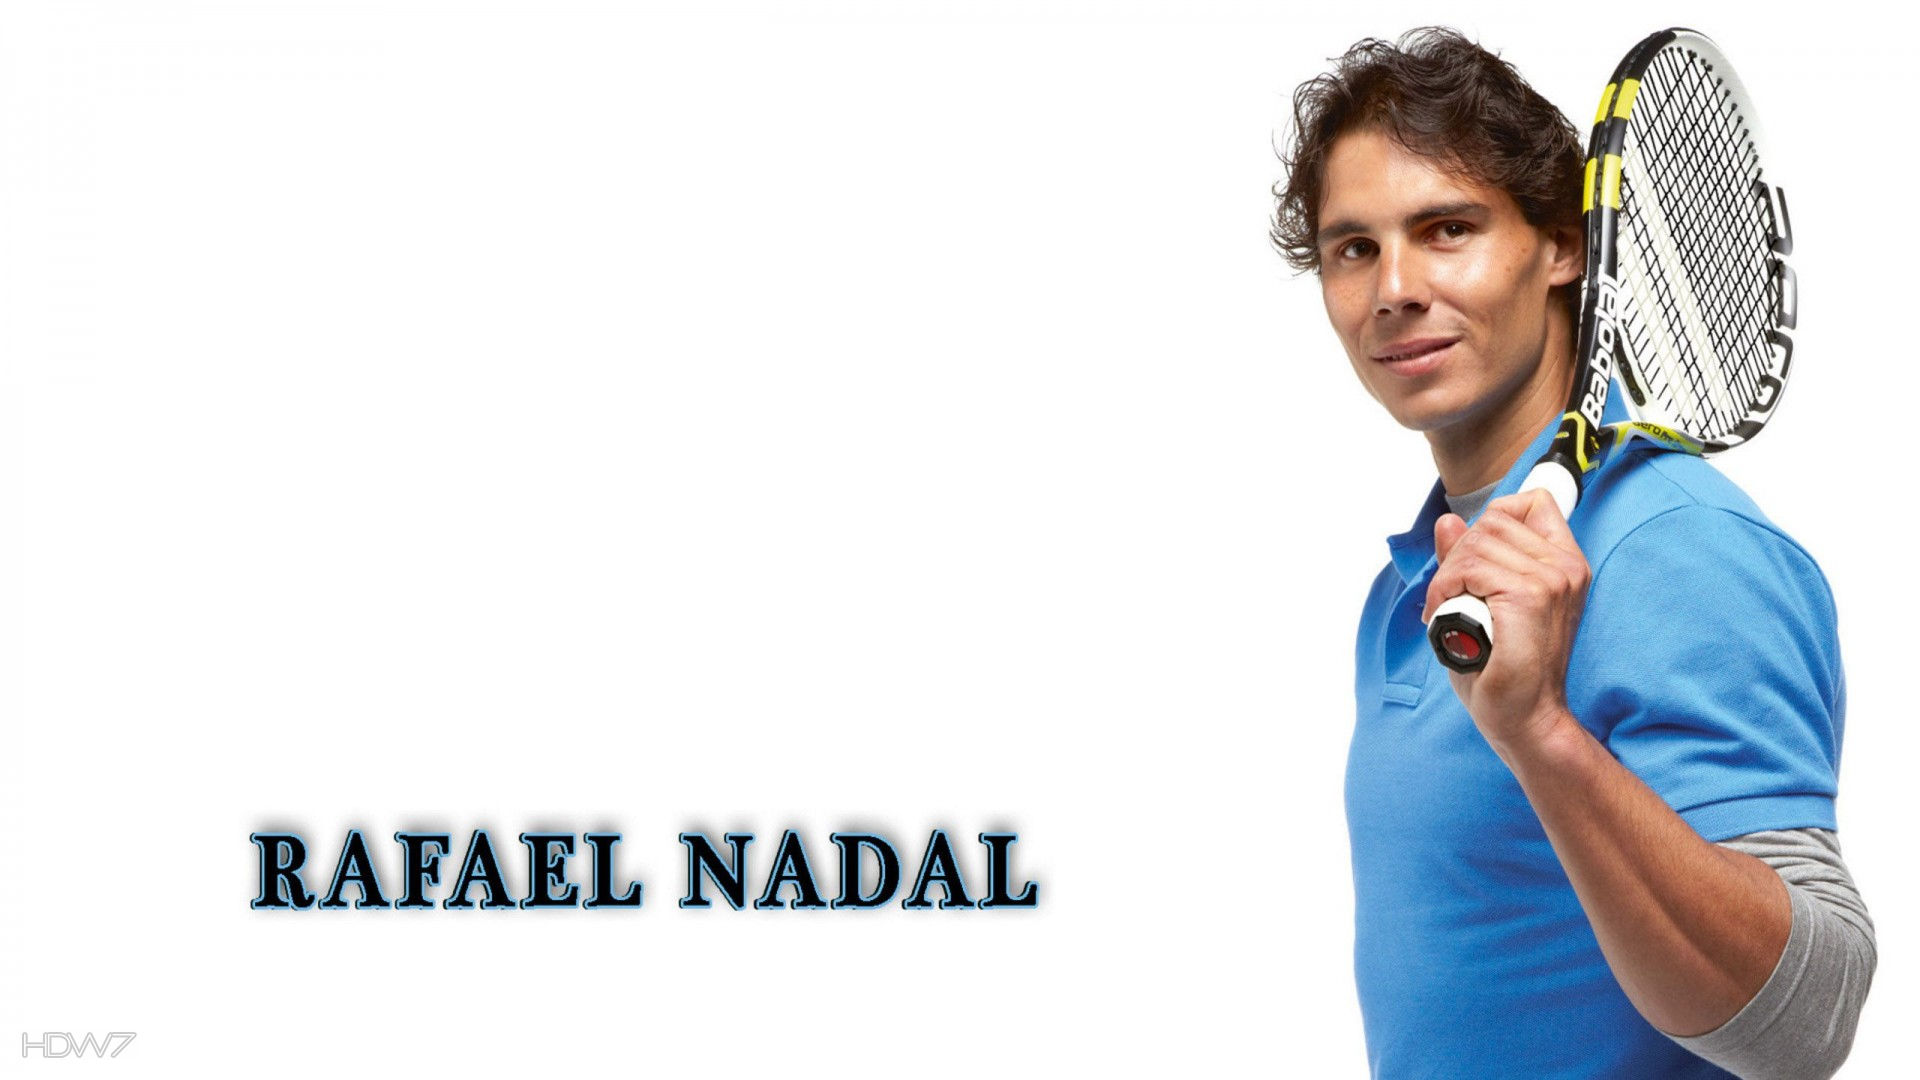 rafael nadal tennis white background 1080x1920 | hd wallpaper